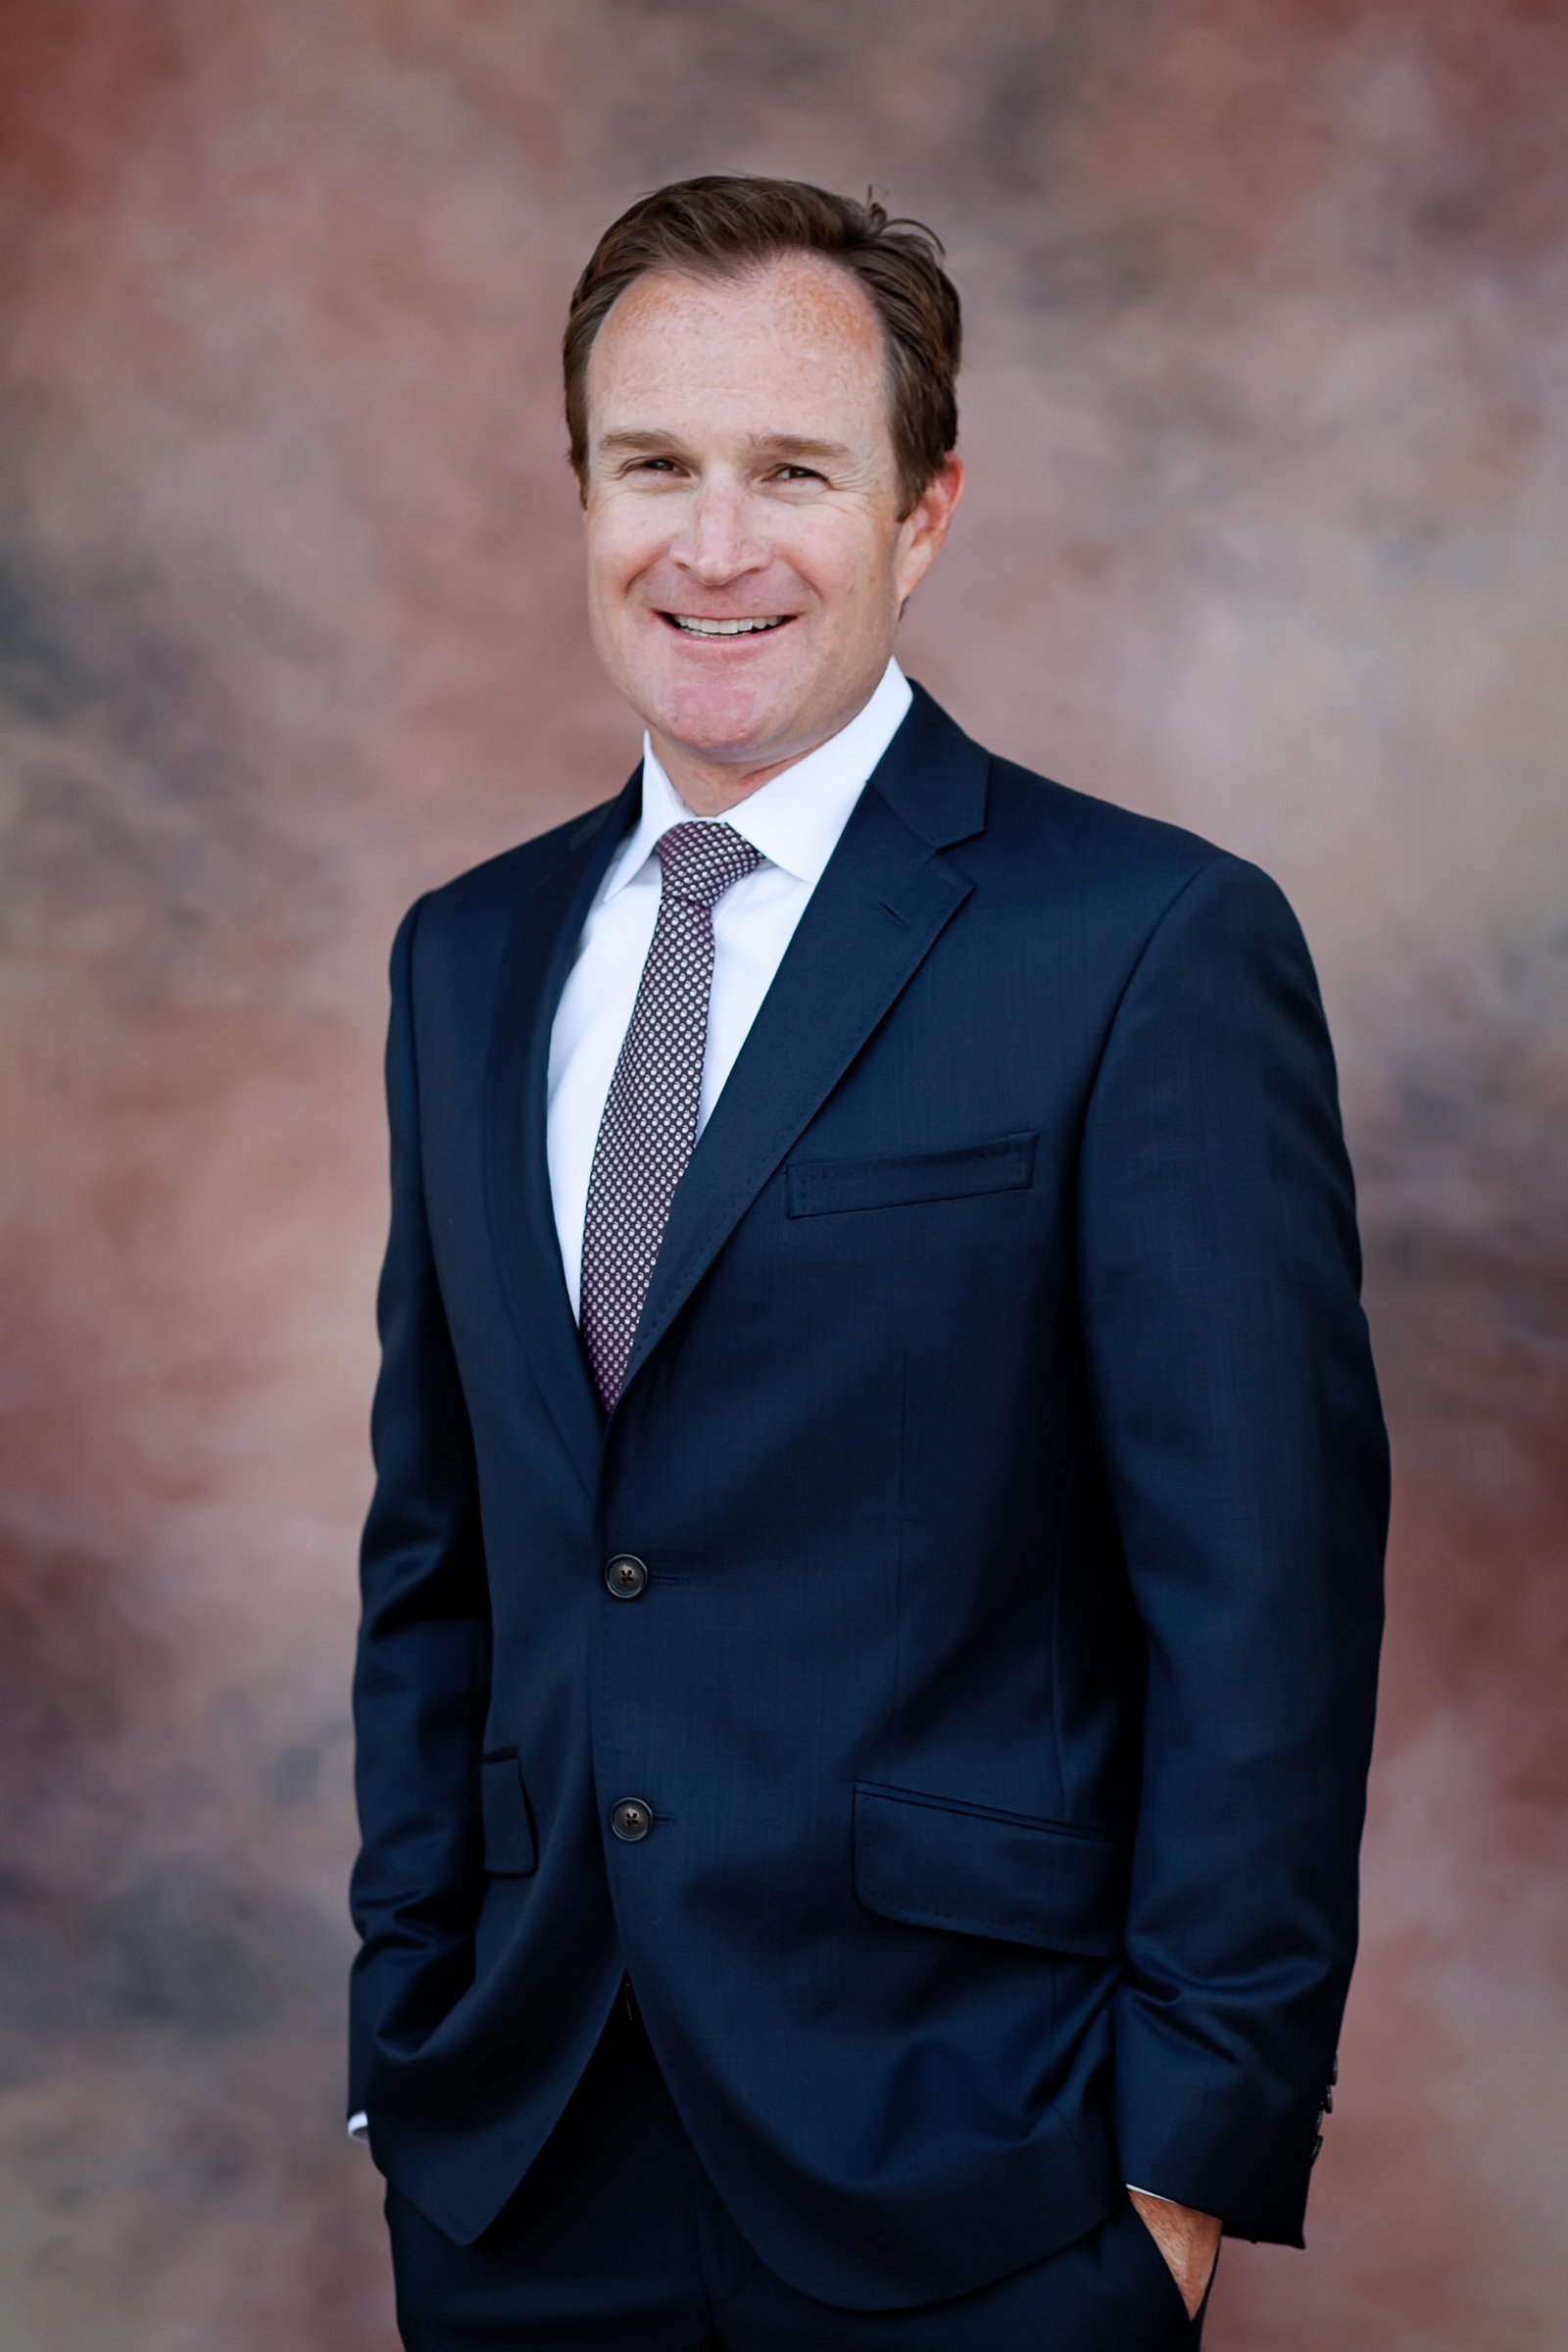 Corporate Head Shot (5 of 6)